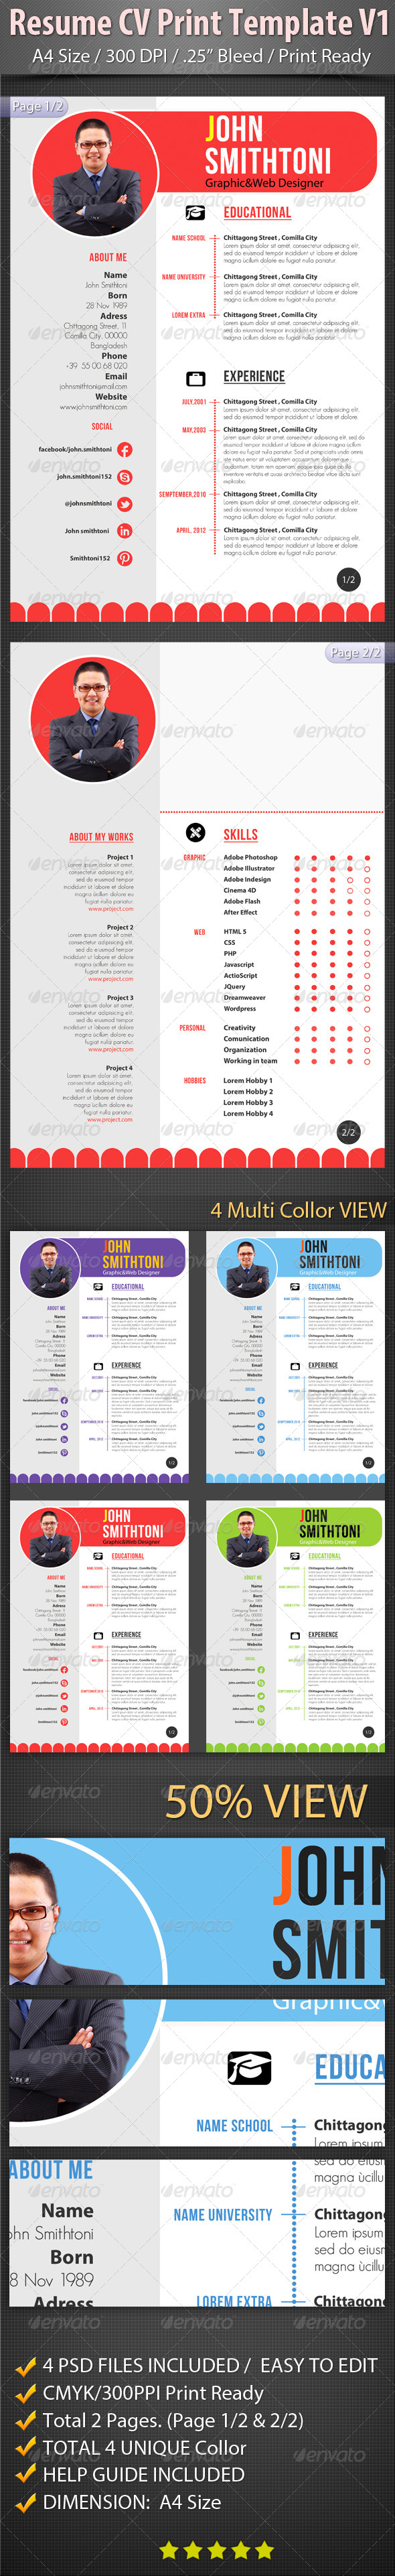 GraphicRiver Resume CV Print Template V1 6529341